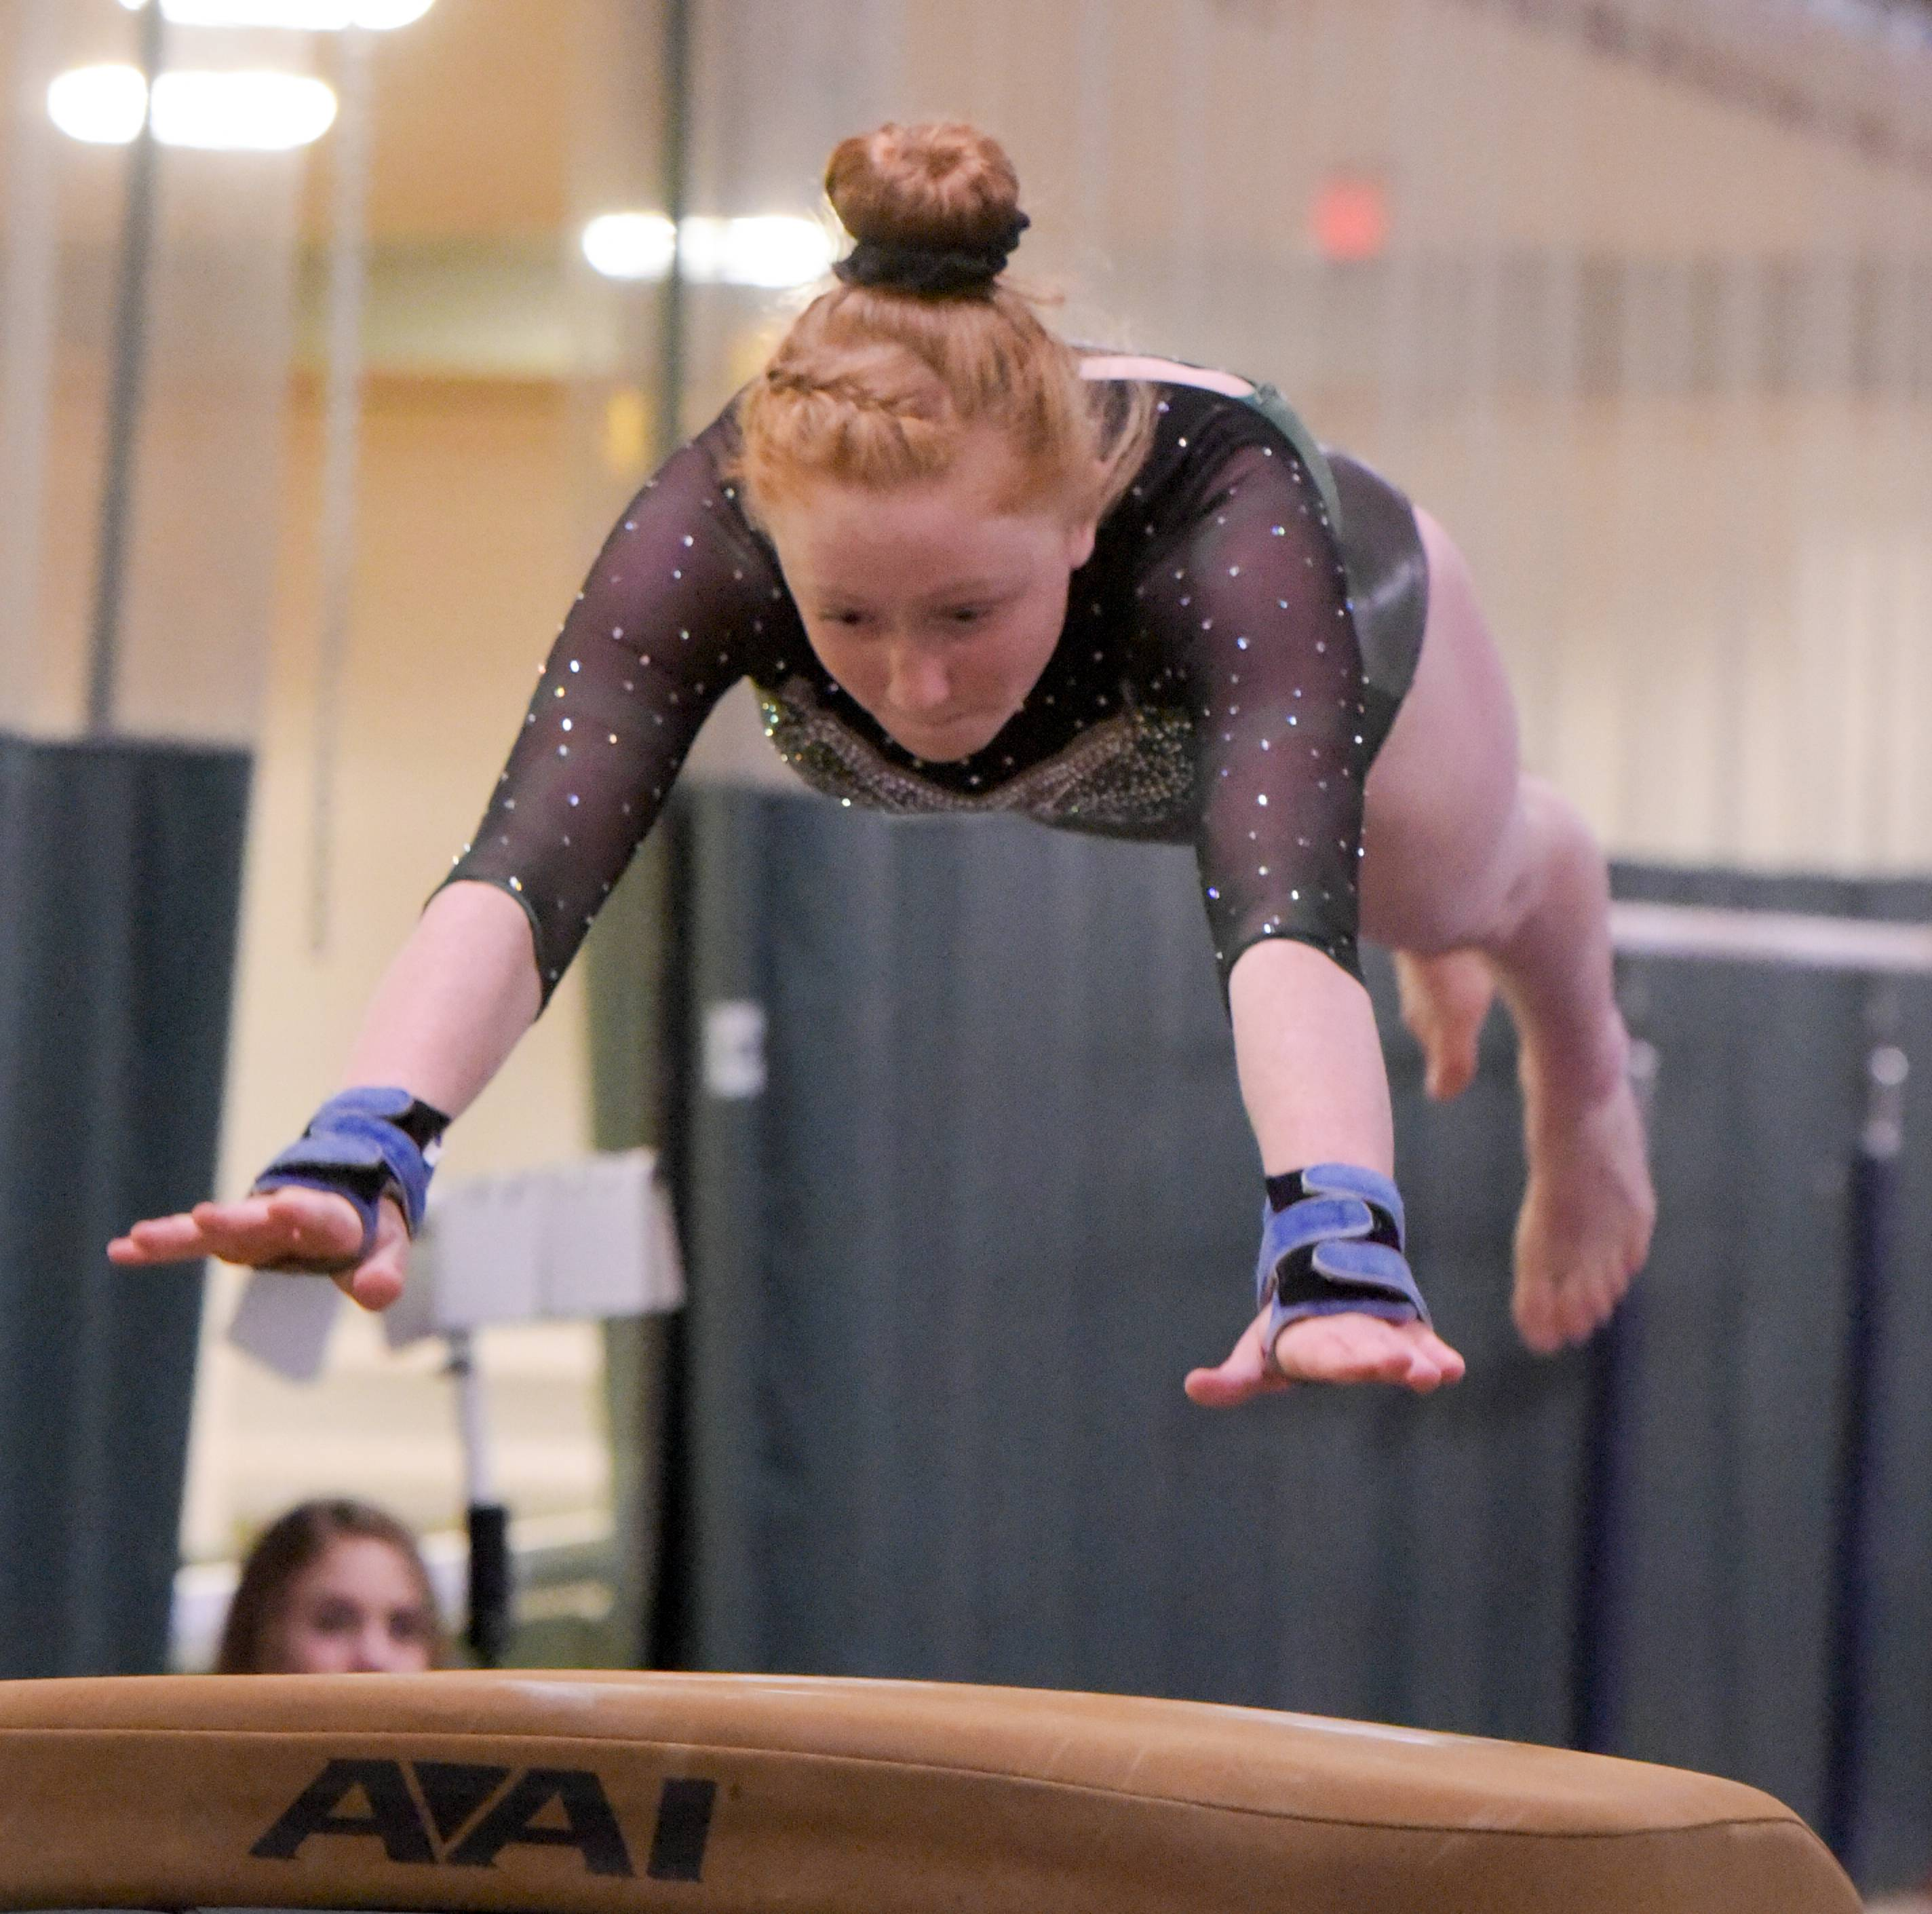 Glenbard West's Katherine Hoban competes on the vault during the Glenbard West regional gymnastics meet on Wednesday, Jan. 31, 2018.